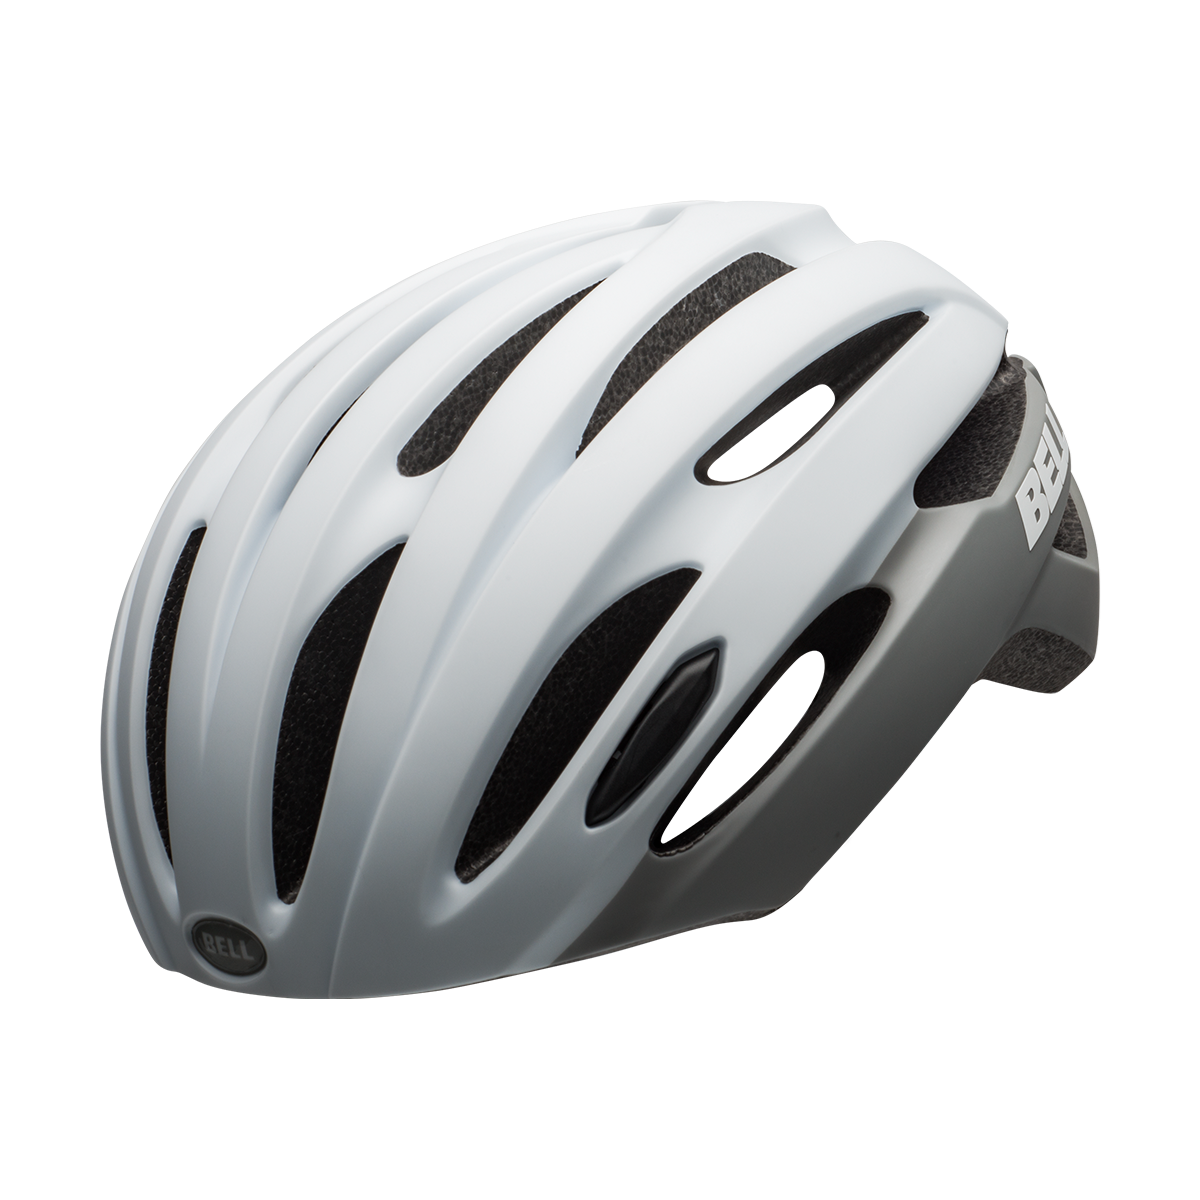 BELL AVENUE ROAD HELMET - ORBIT Cycling